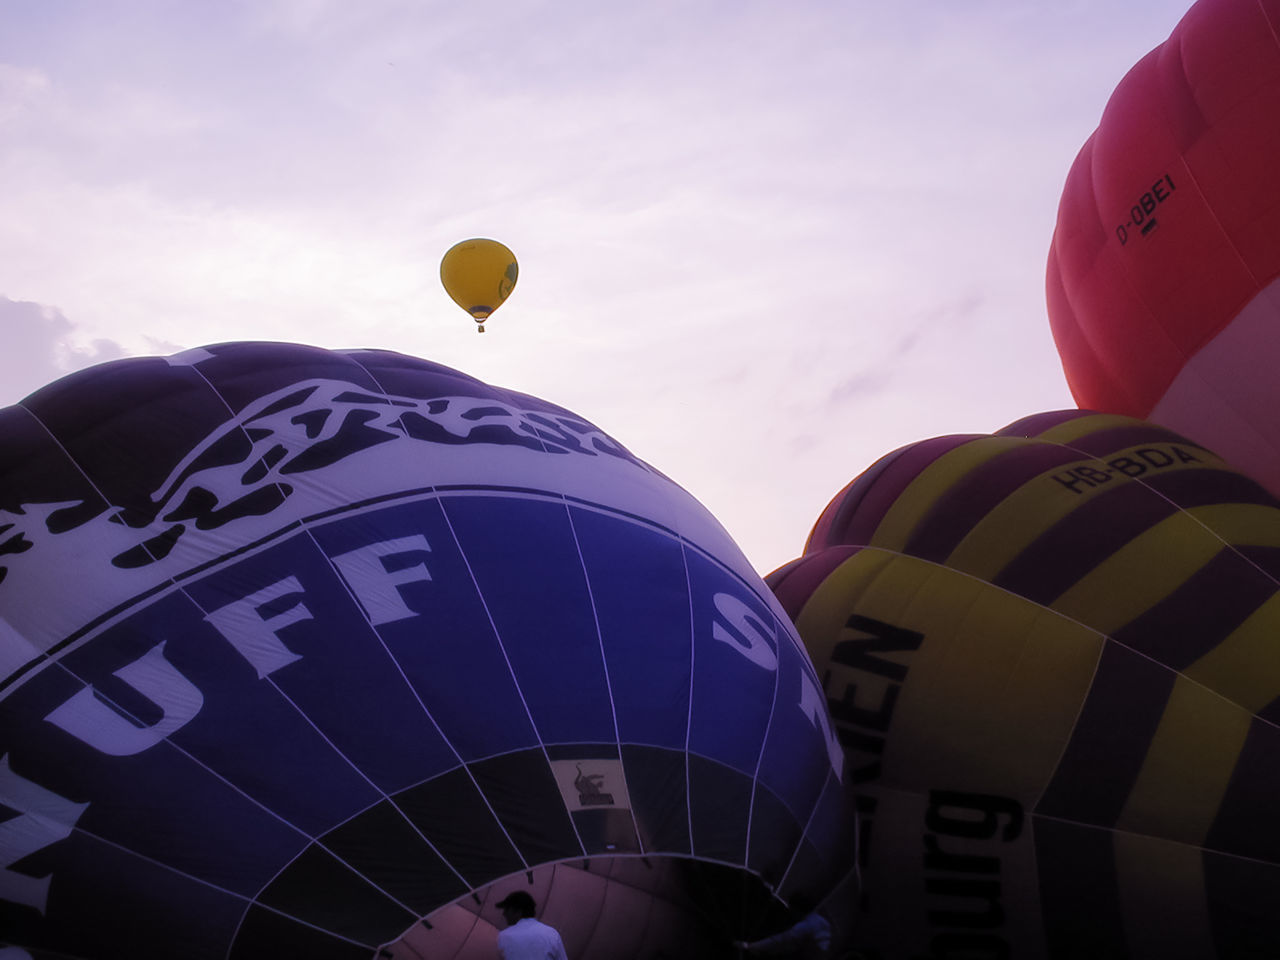 balloon, text, flying, communication, hot air balloon, yellow, celebration, mid-air, helium balloon, multi colored, day, outdoors, sky, no people